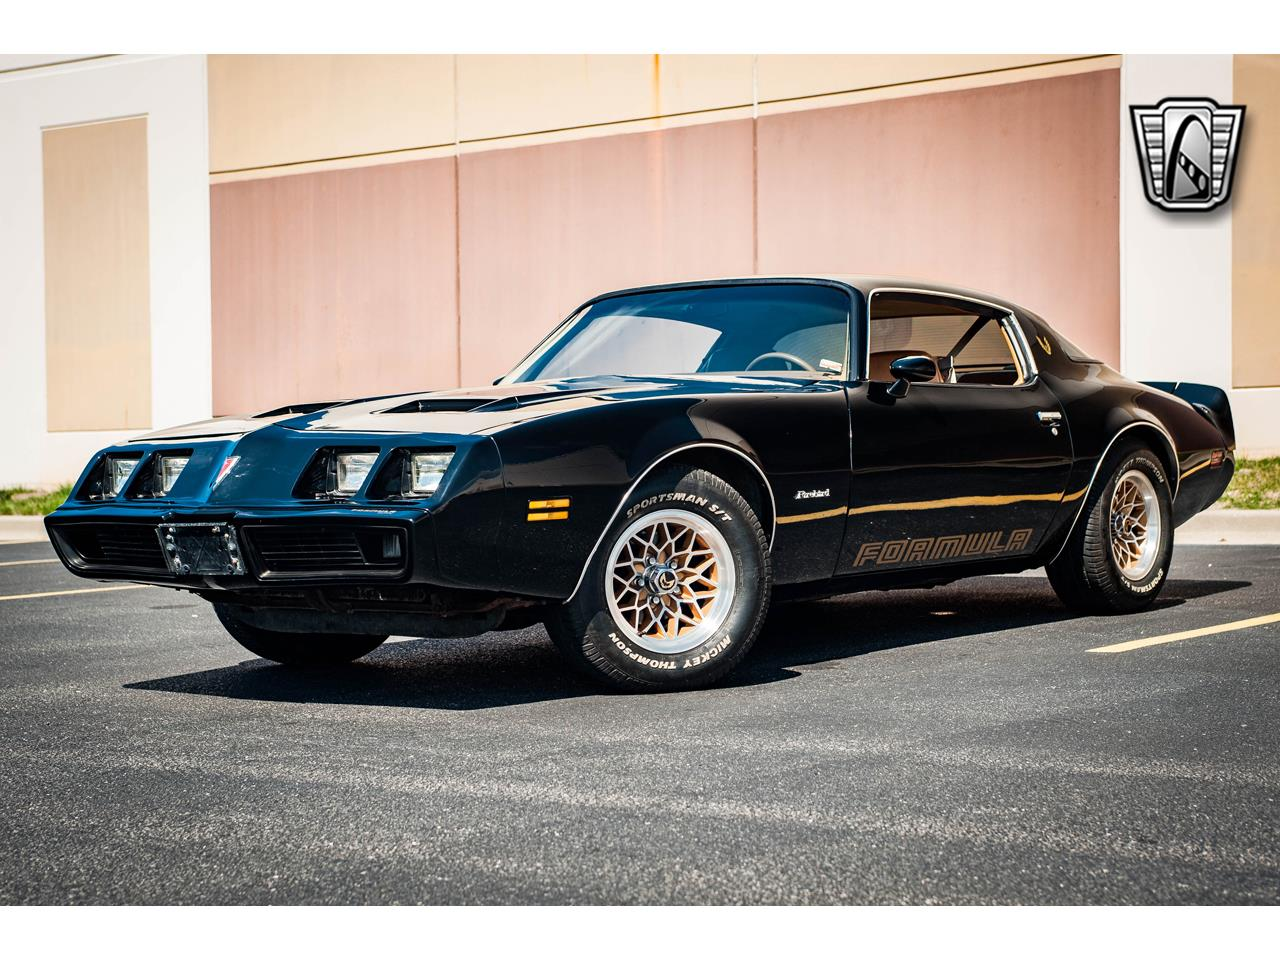 Large Picture of '79 Pontiac Firebird located in Illinois - QB8A